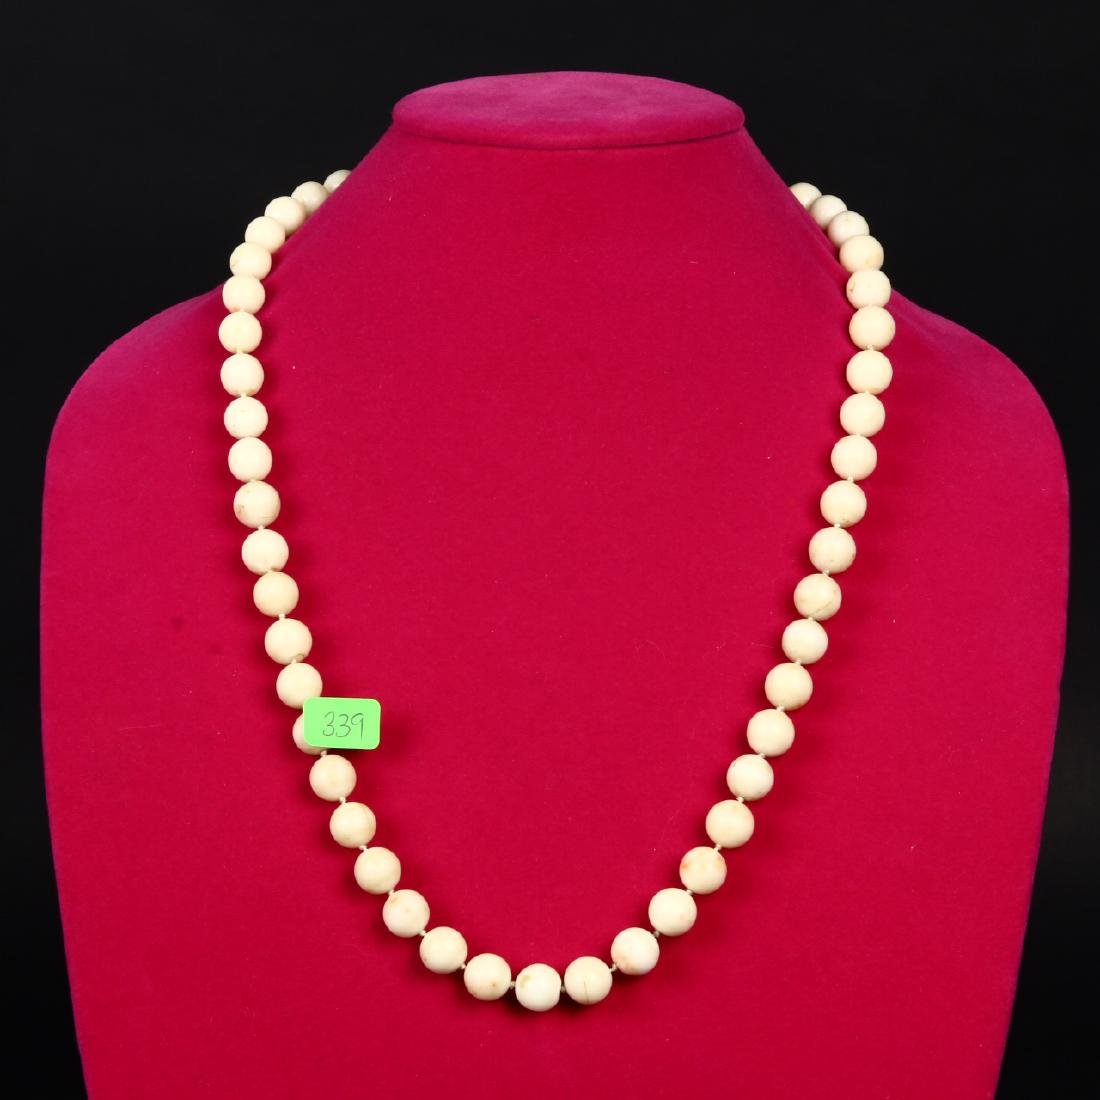 Angel Skin Coral Necklace 14K Gold White Peach - 3